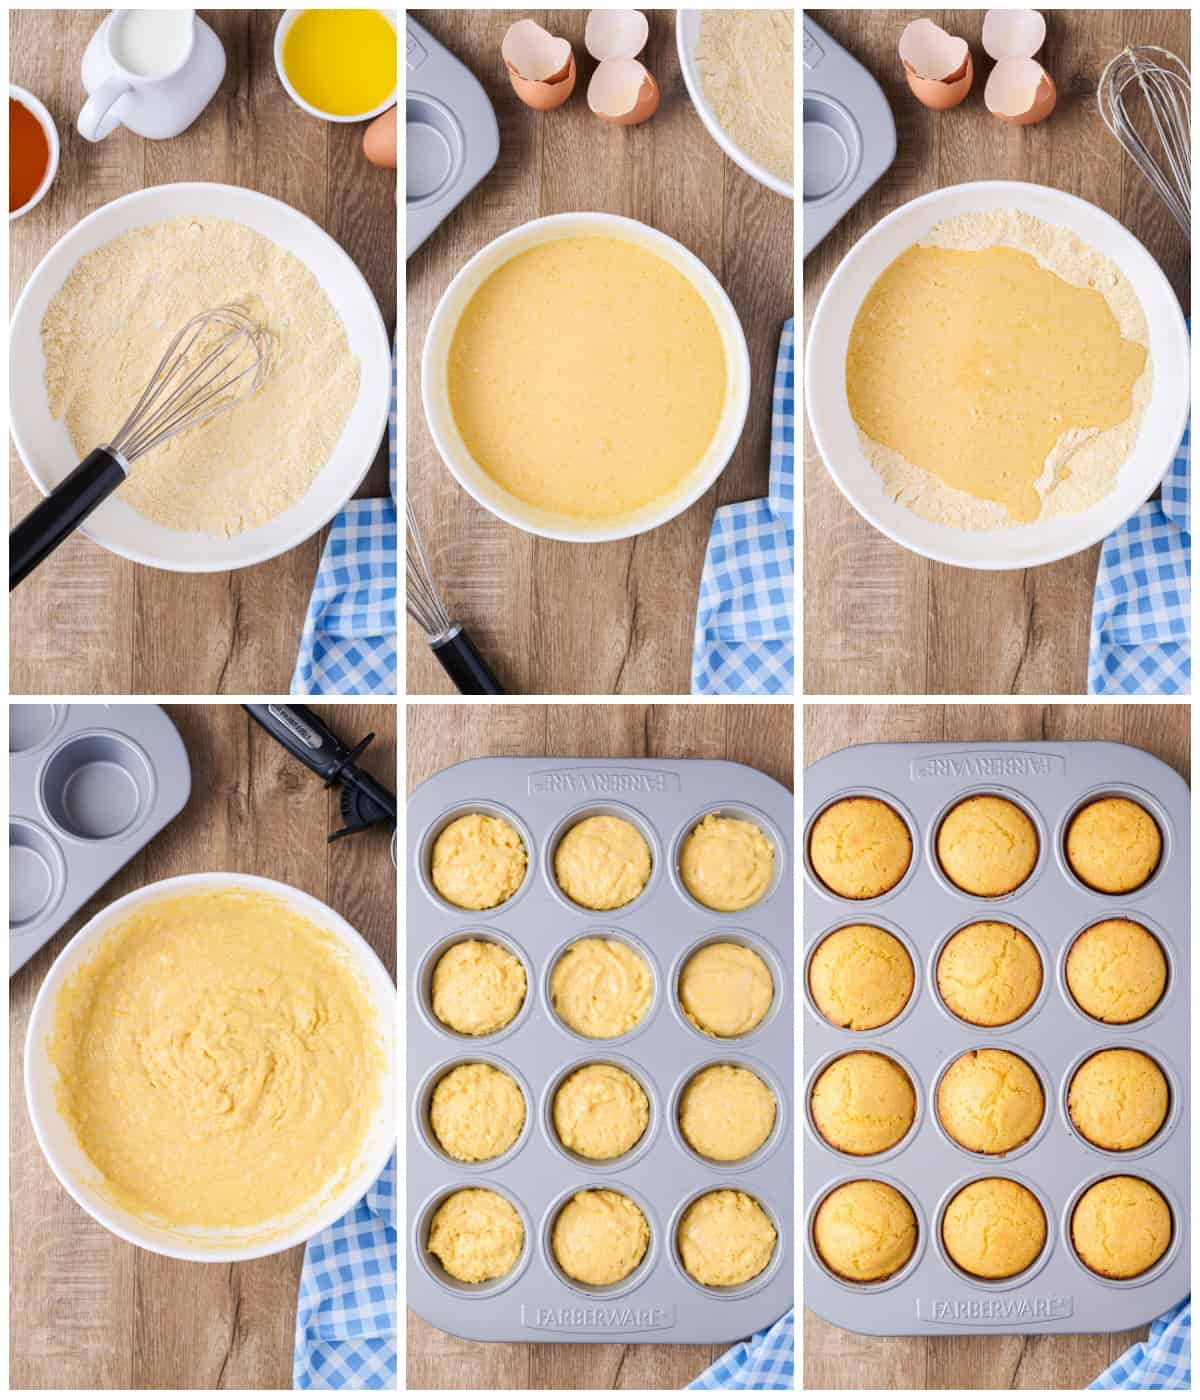 Step by step photos on how to make Cornbread Muffins